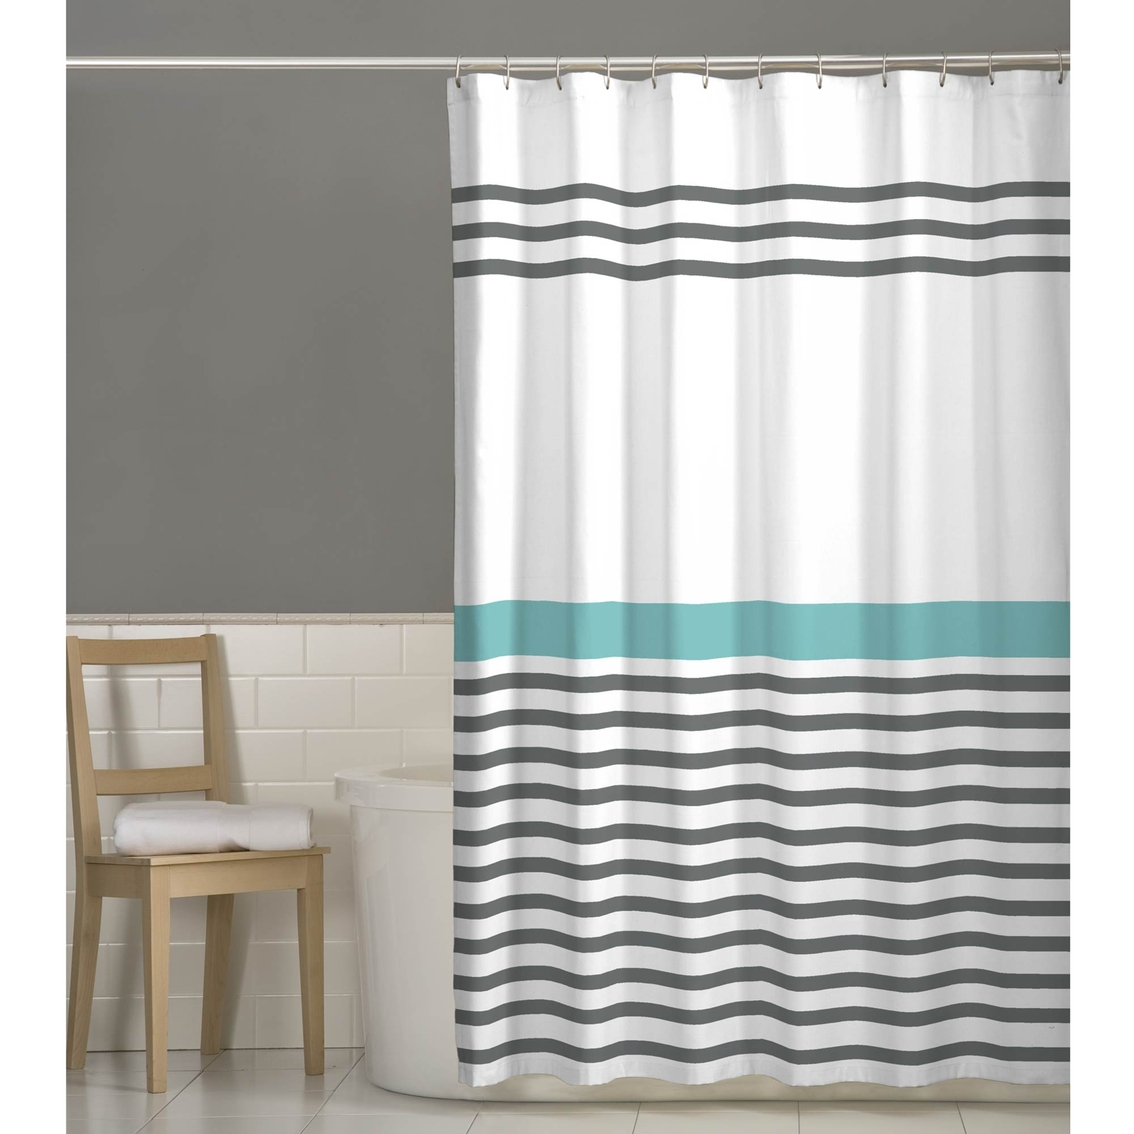 Maytex Simple Stripe Fabric Shower Curtain Shower Curtains